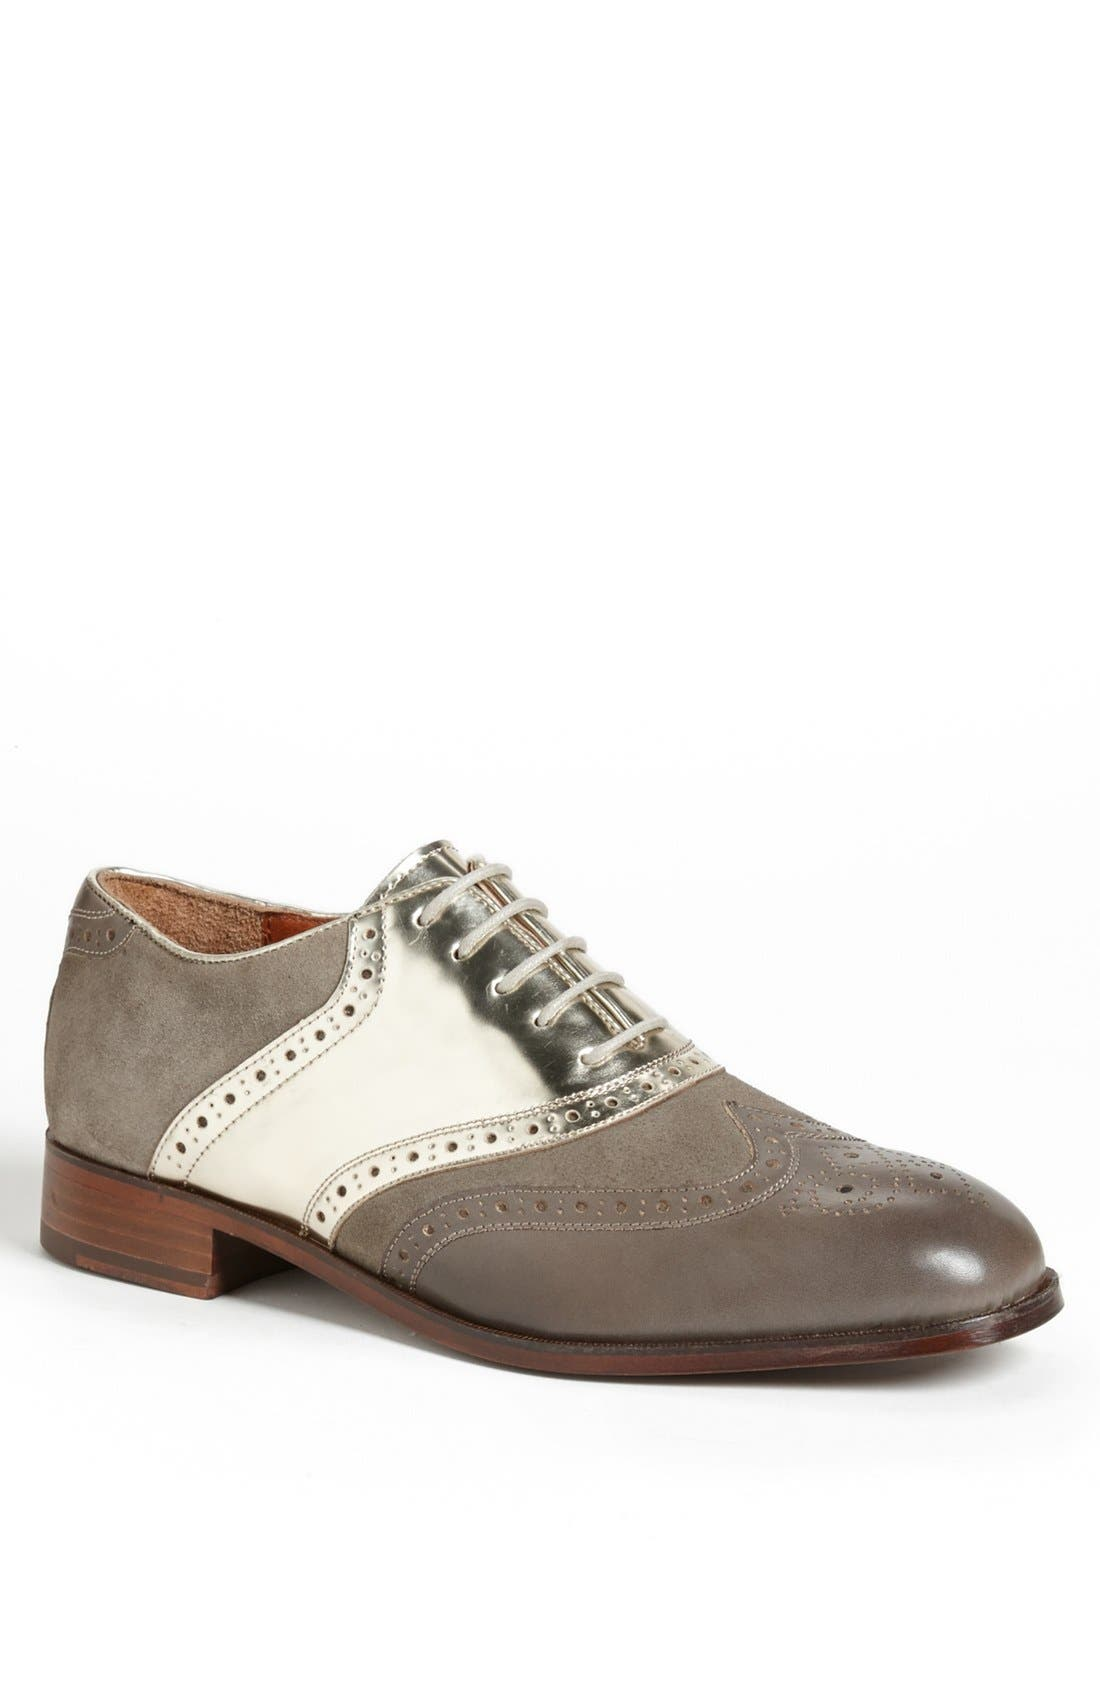 Main Image - Florsheim by Duckie Brown 'Wing' Saddle Shoe